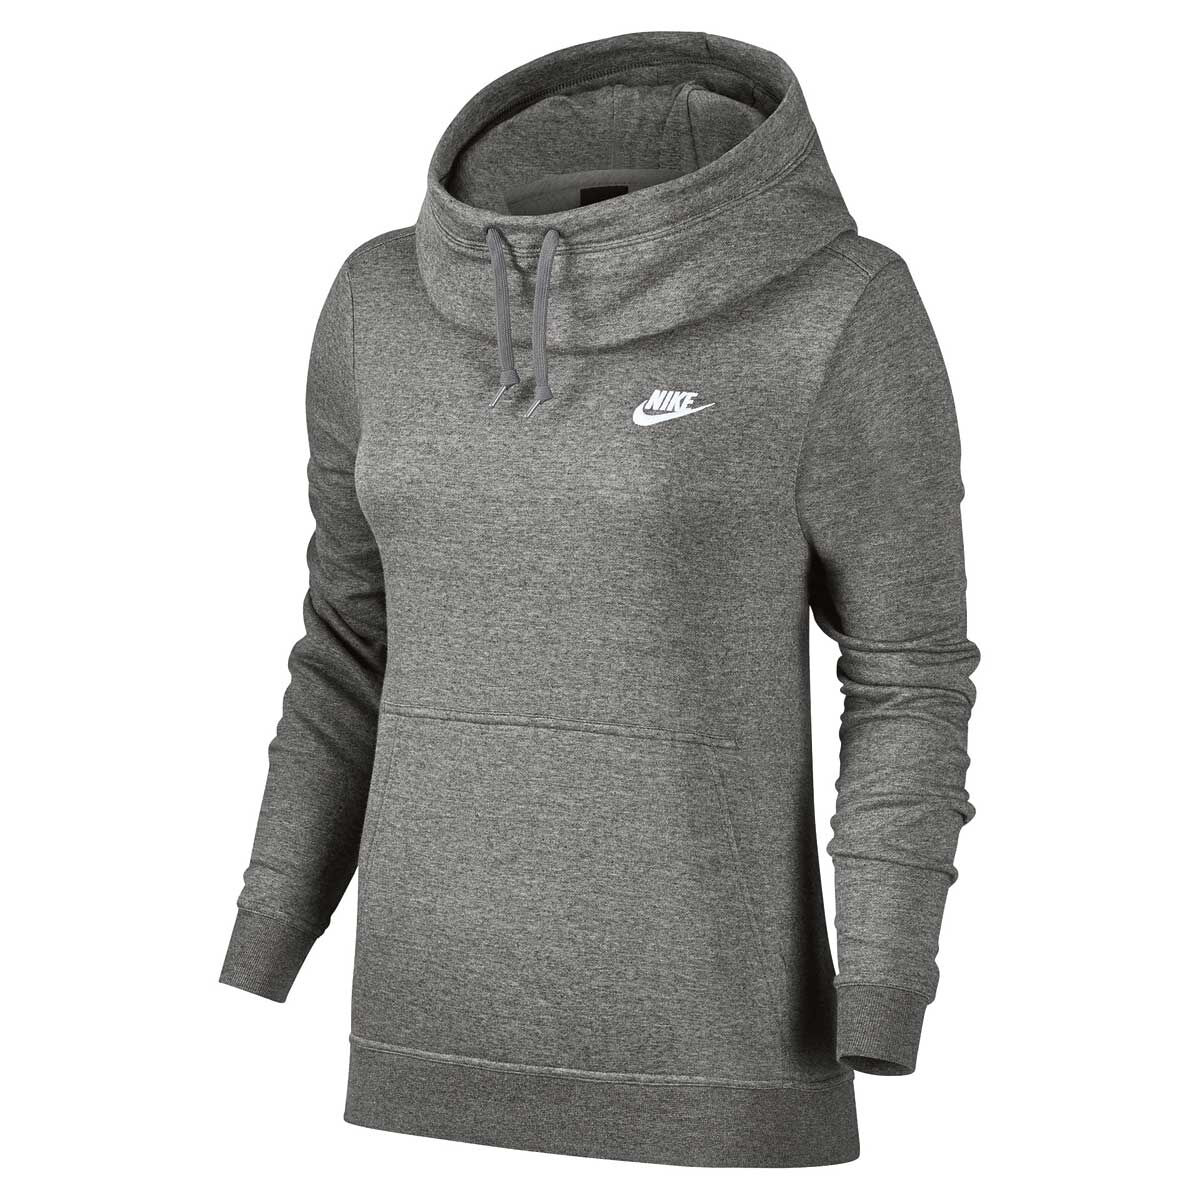 Nike Cowl Neck Hoodie White Speckled Sweatshirt XS Excellent